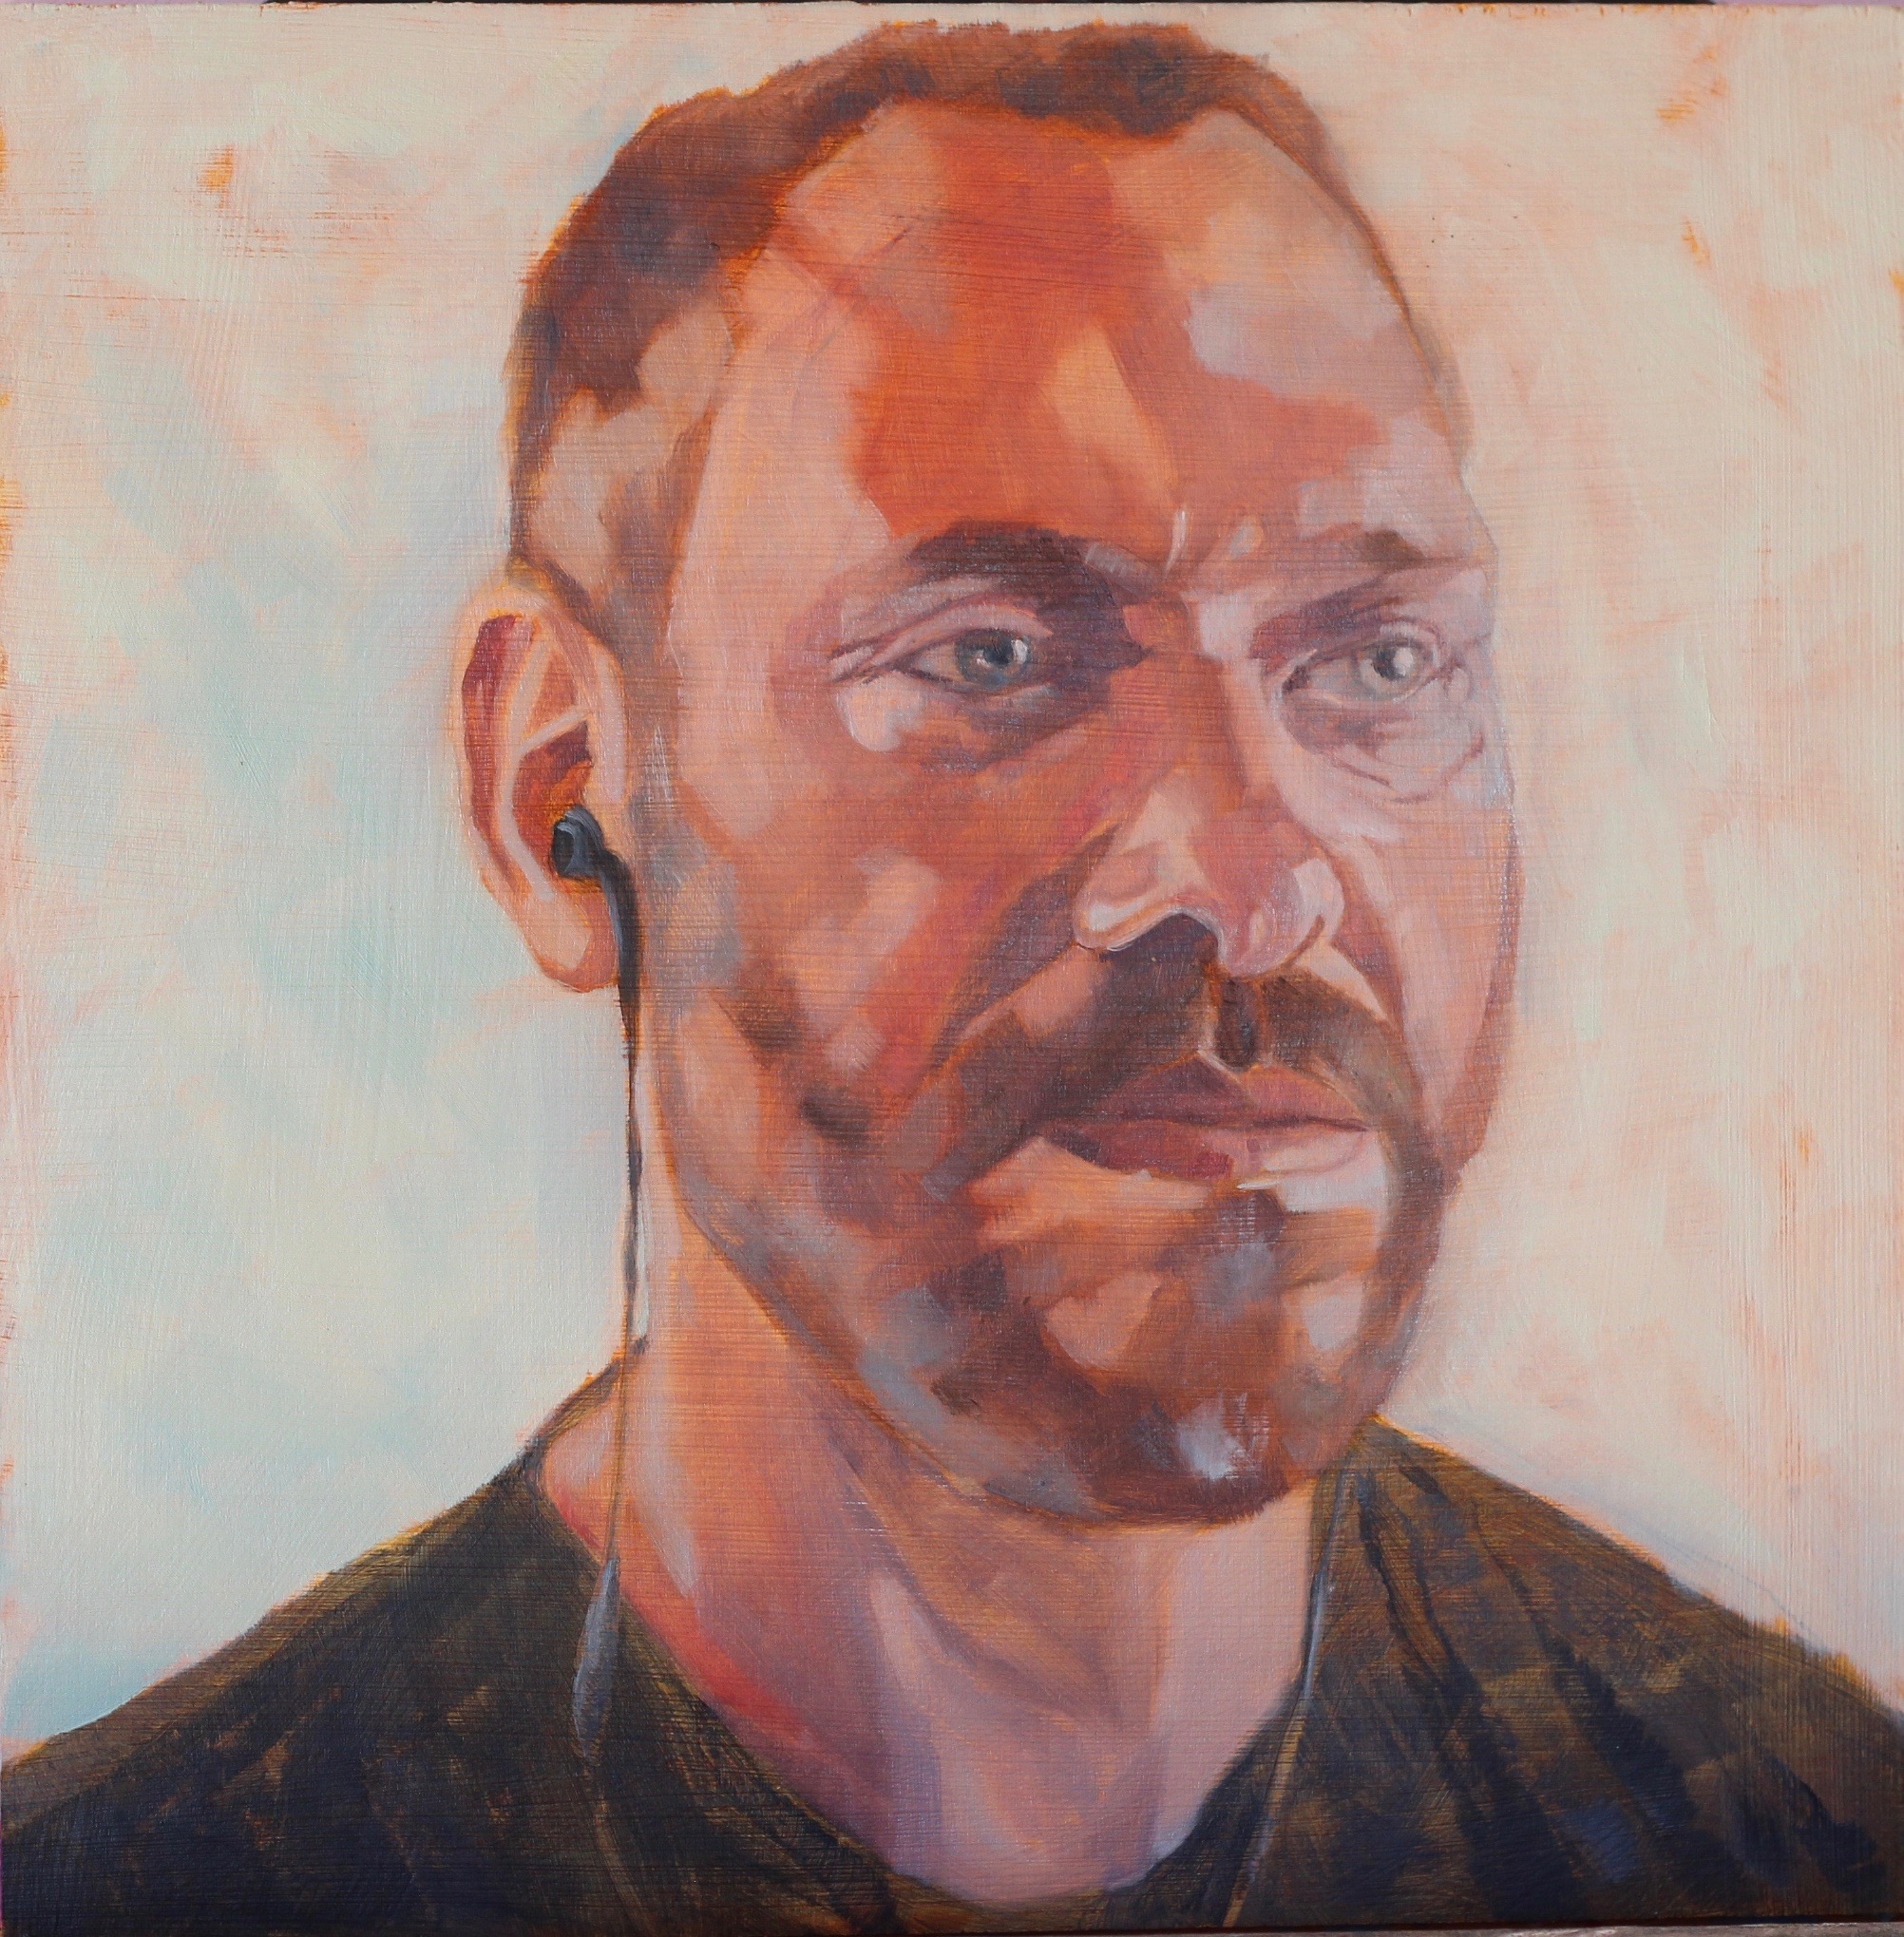 Will Young - oil on board 10 x 10in Alex